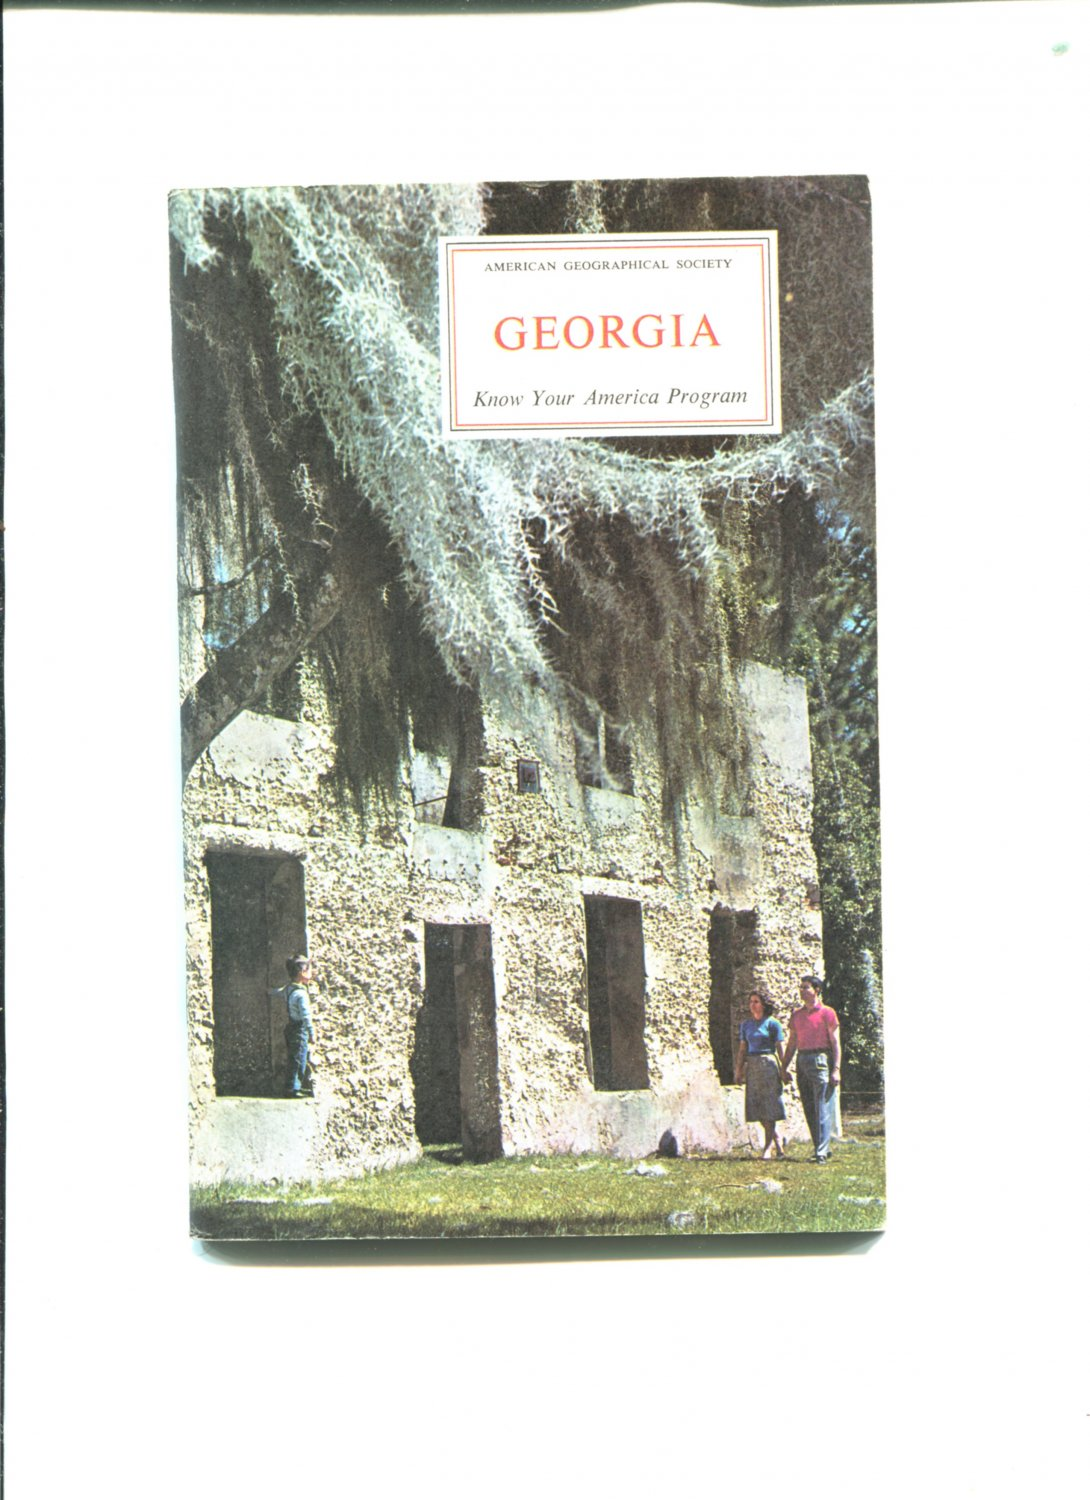 American Geographical Society GEORGIA 1965 Know Your America Program Very Good